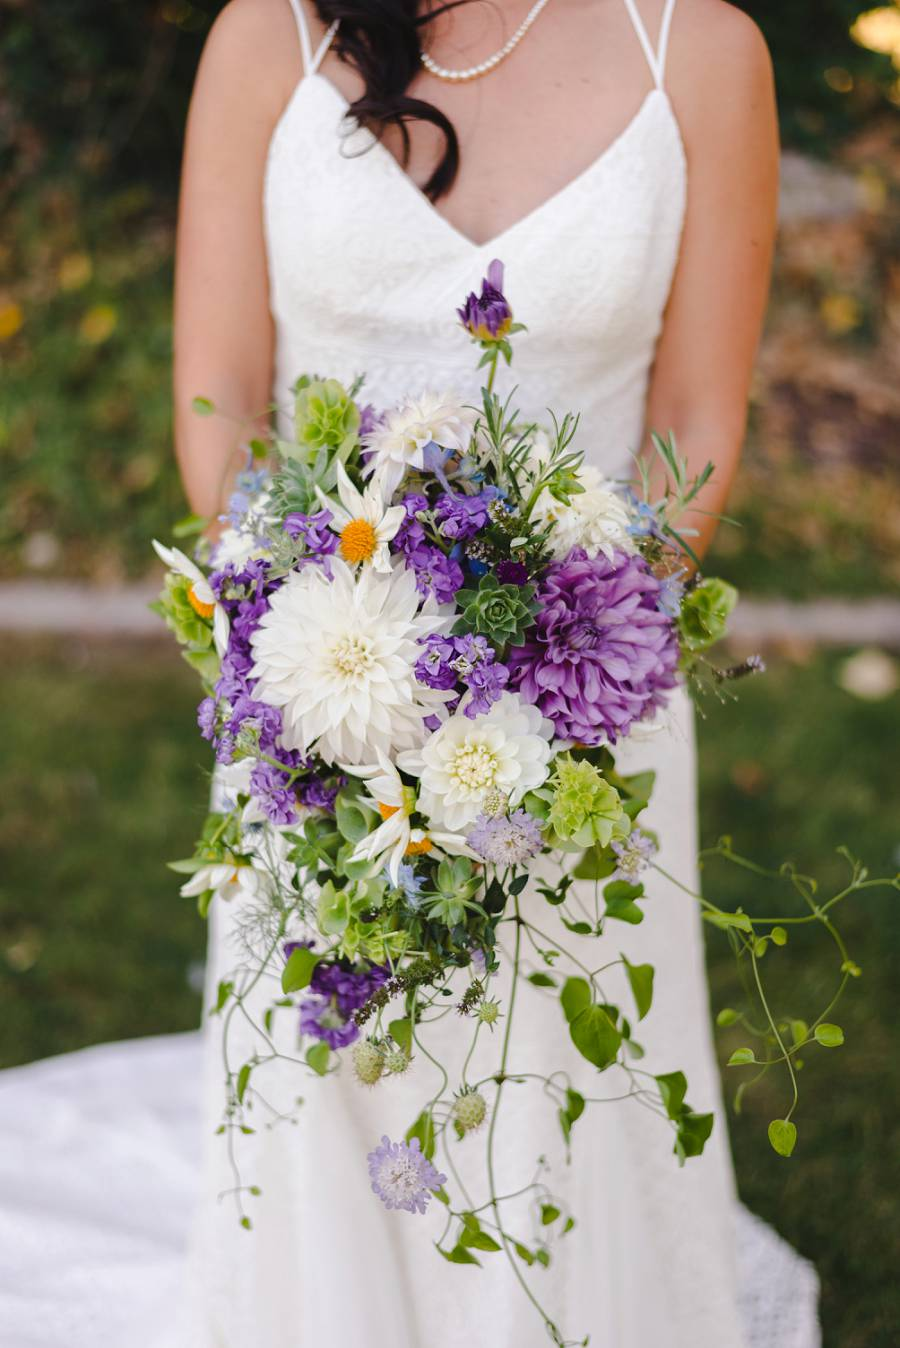 portrait of bride holding a bouquet of flowers